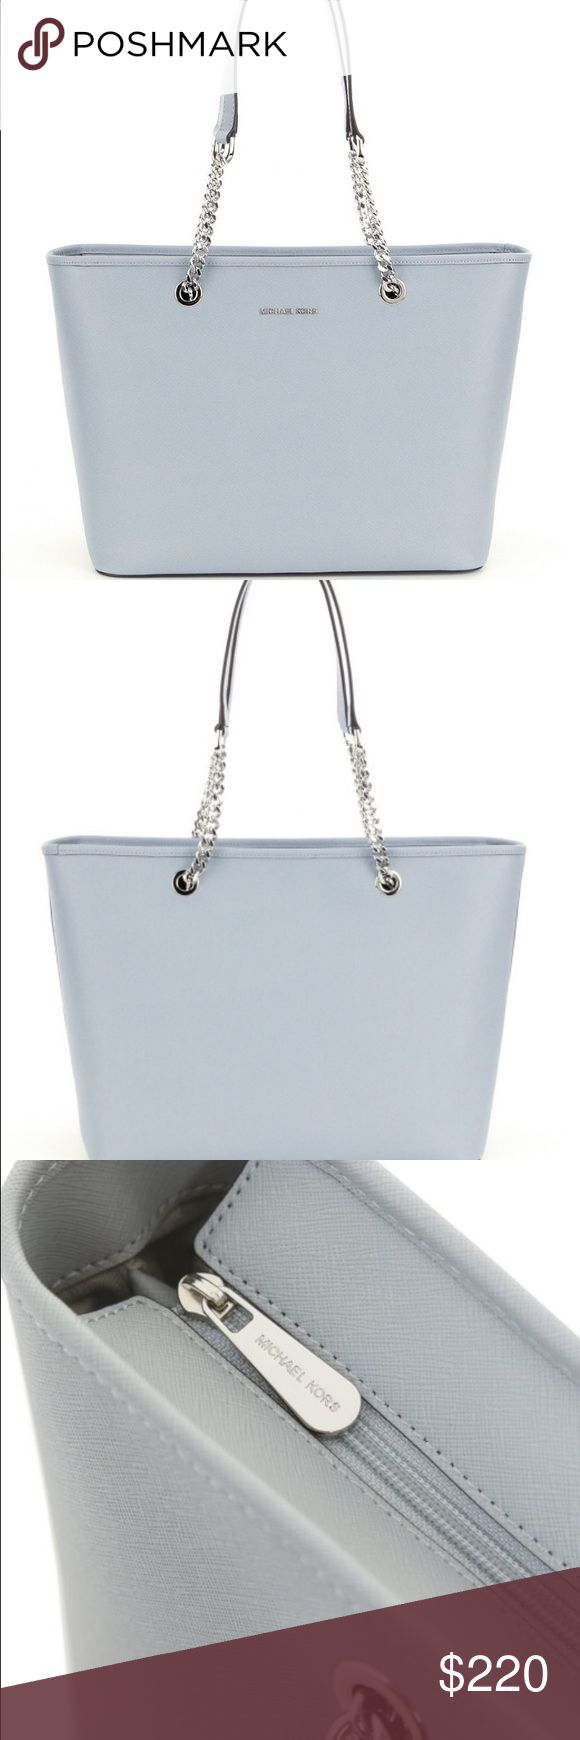 NWT Authentic Michael Kors Jet Set Bag Dusty Blue Beautiful Michael Kors Jet Set Tote bag with silver chains in color Dusty Blue. NWT! Get this bargain before it's gone! Michael Kors Bags Shoulder Bags